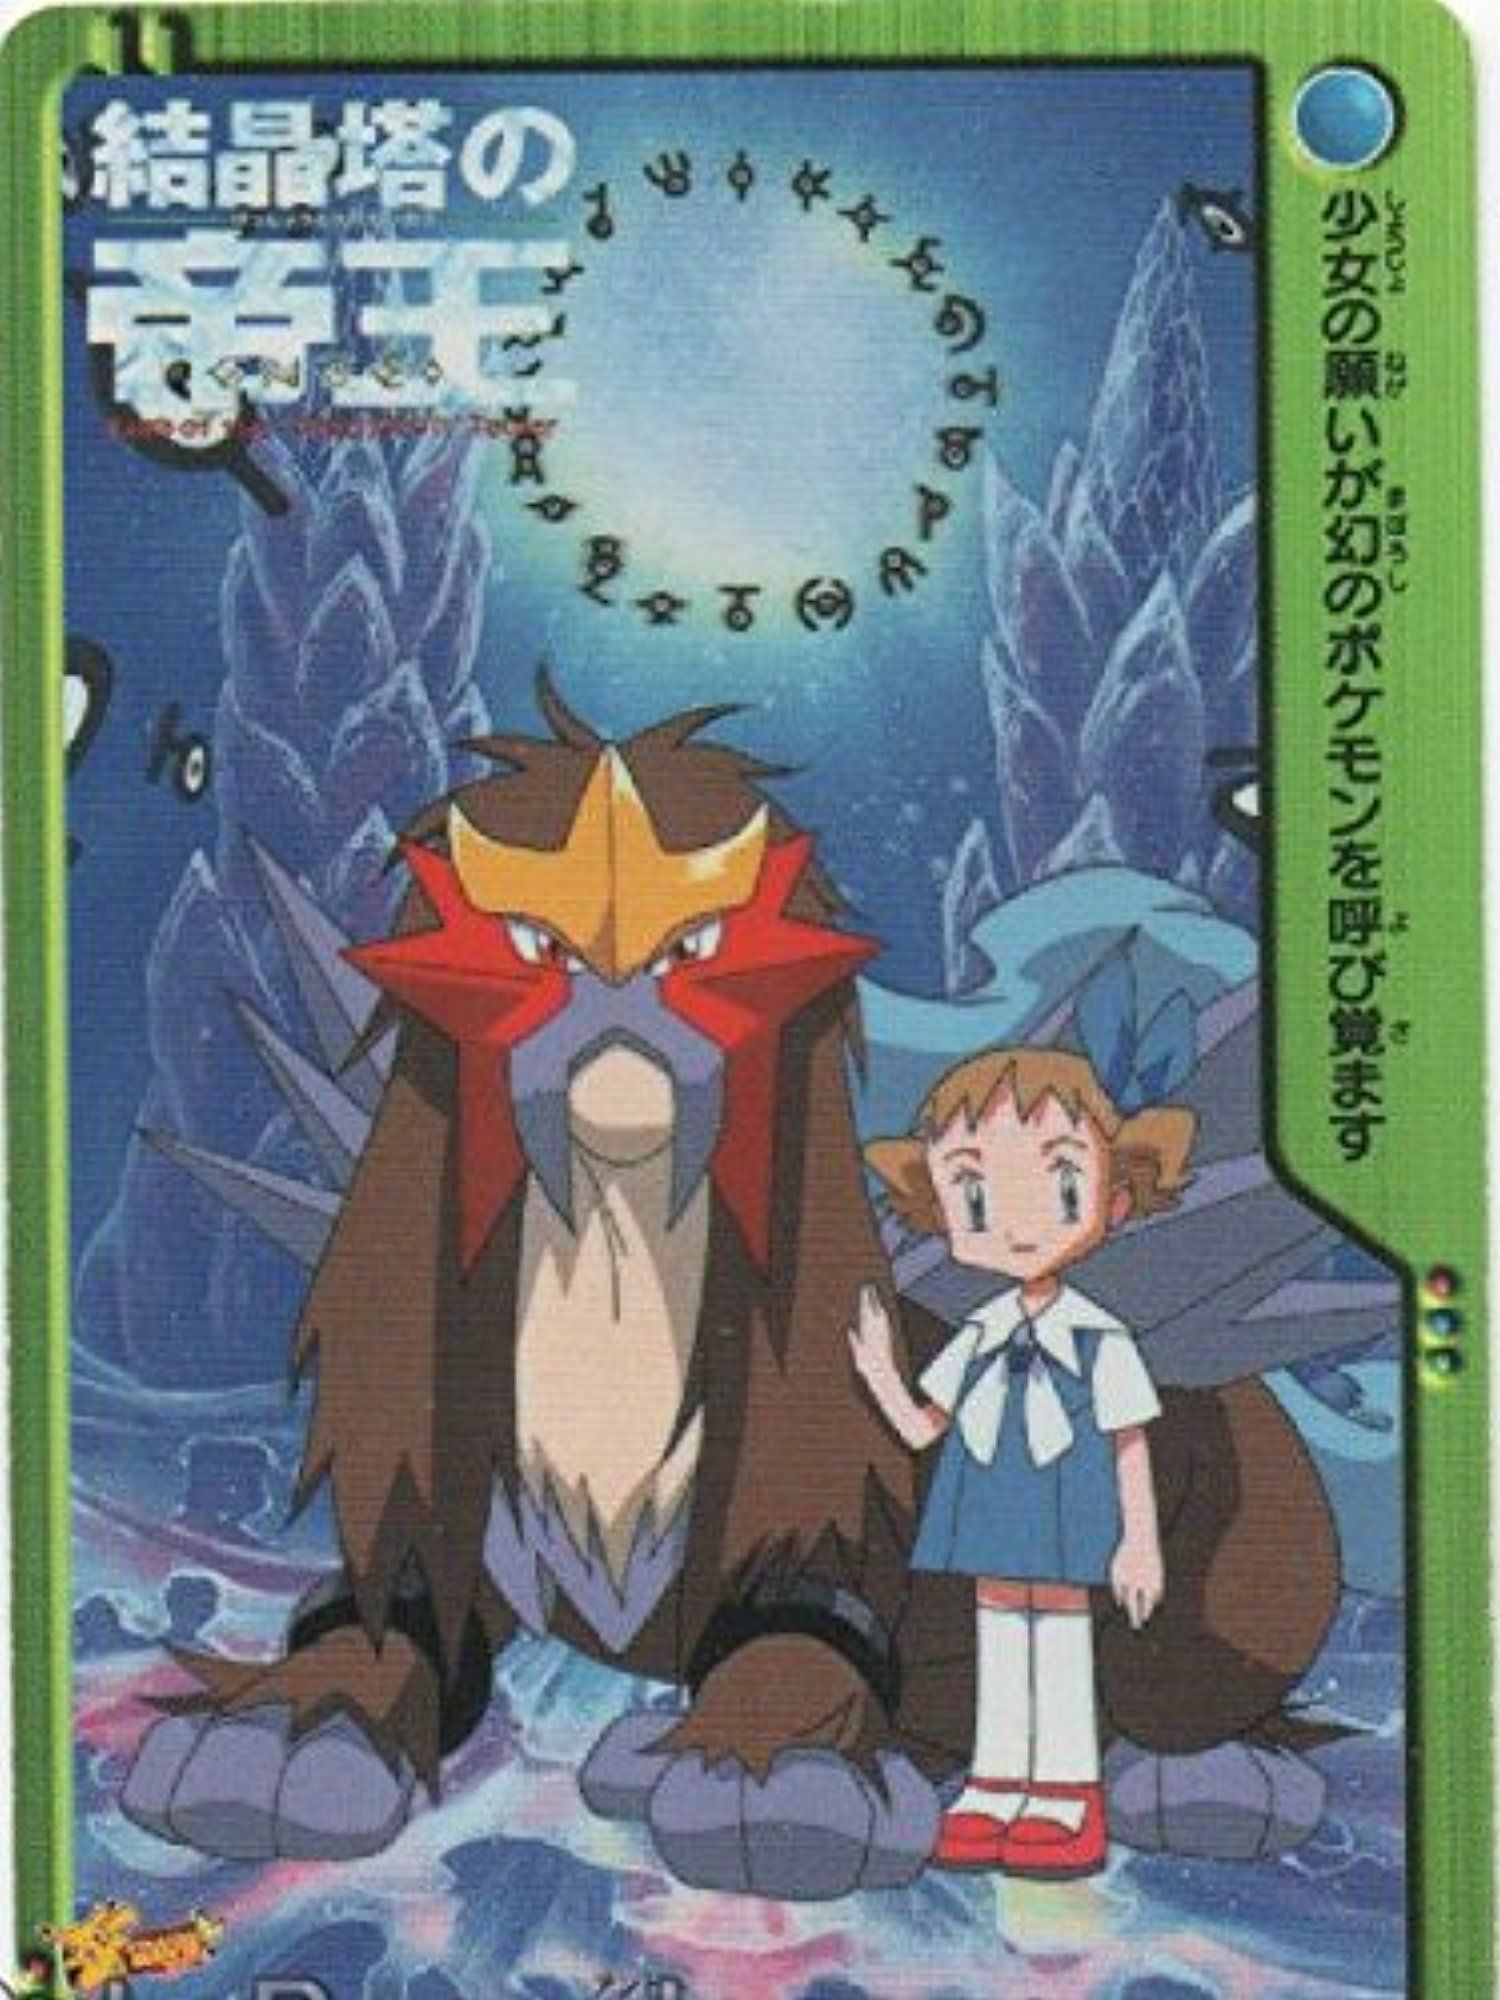 Pokemon Card Japanese Entei Unown Movie 3 Bandai Awesome Products Selected By Anna Churchill Pokemon Movies Pokemon Cards Pokemon